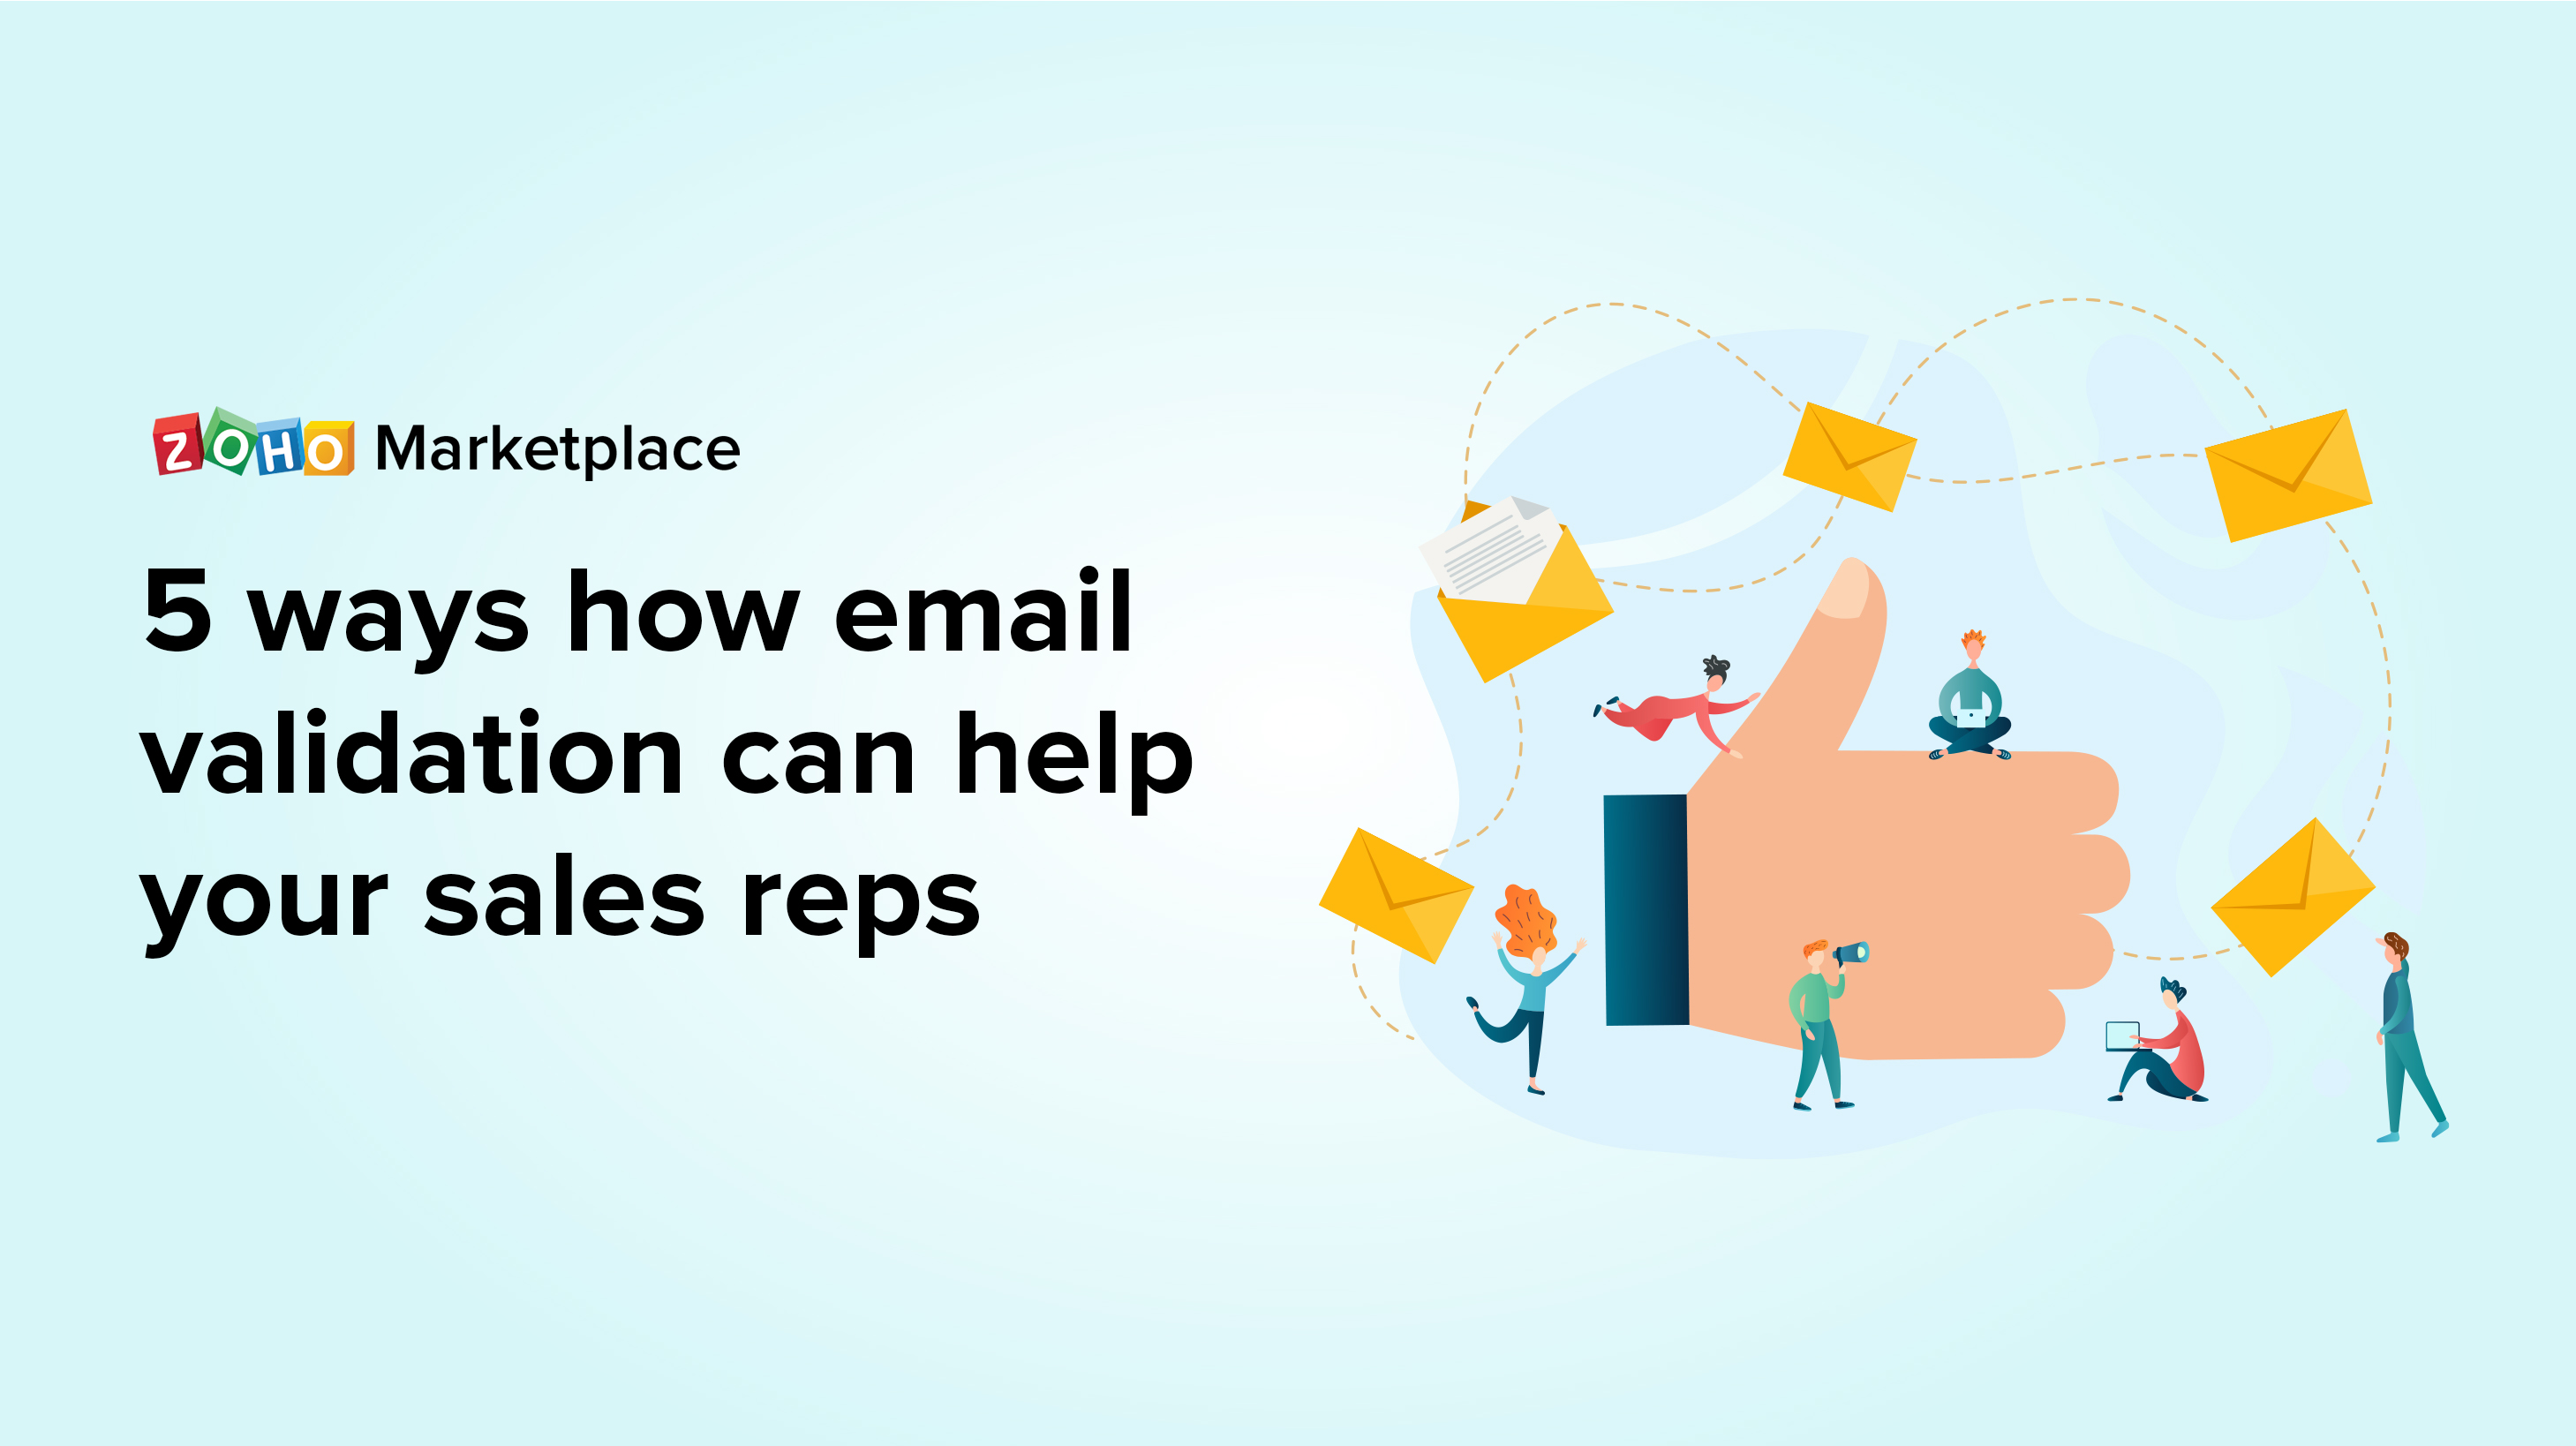 5 ways how email validation can help your sales reps